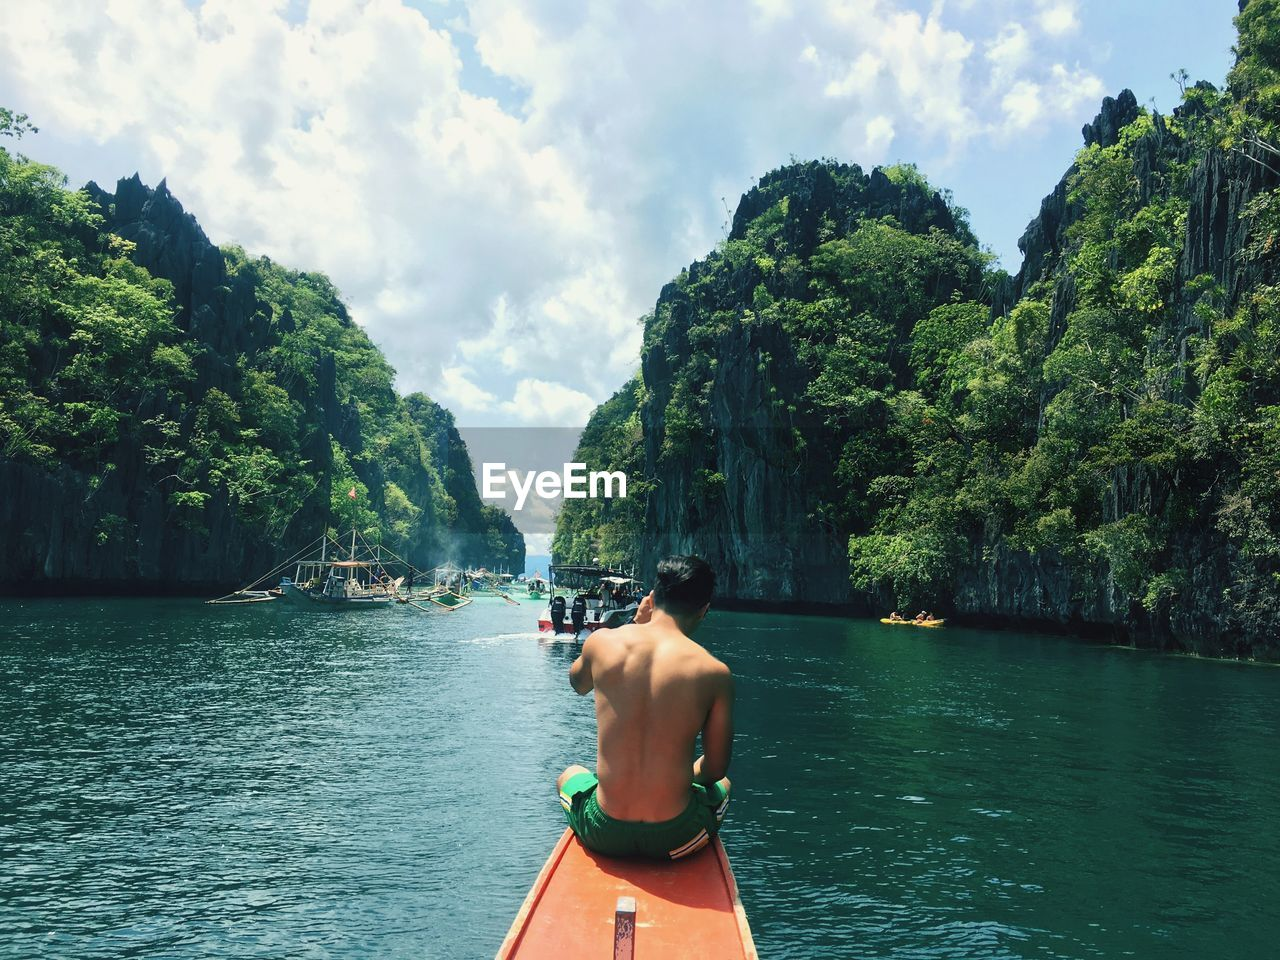 water, tree, real people, sky, plant, rear view, nature, cloud - sky, day, lifestyles, shirtless, one person, beauty in nature, leisure activity, transportation, men, nautical vessel, three quarter length, scenics - nature, outdoors